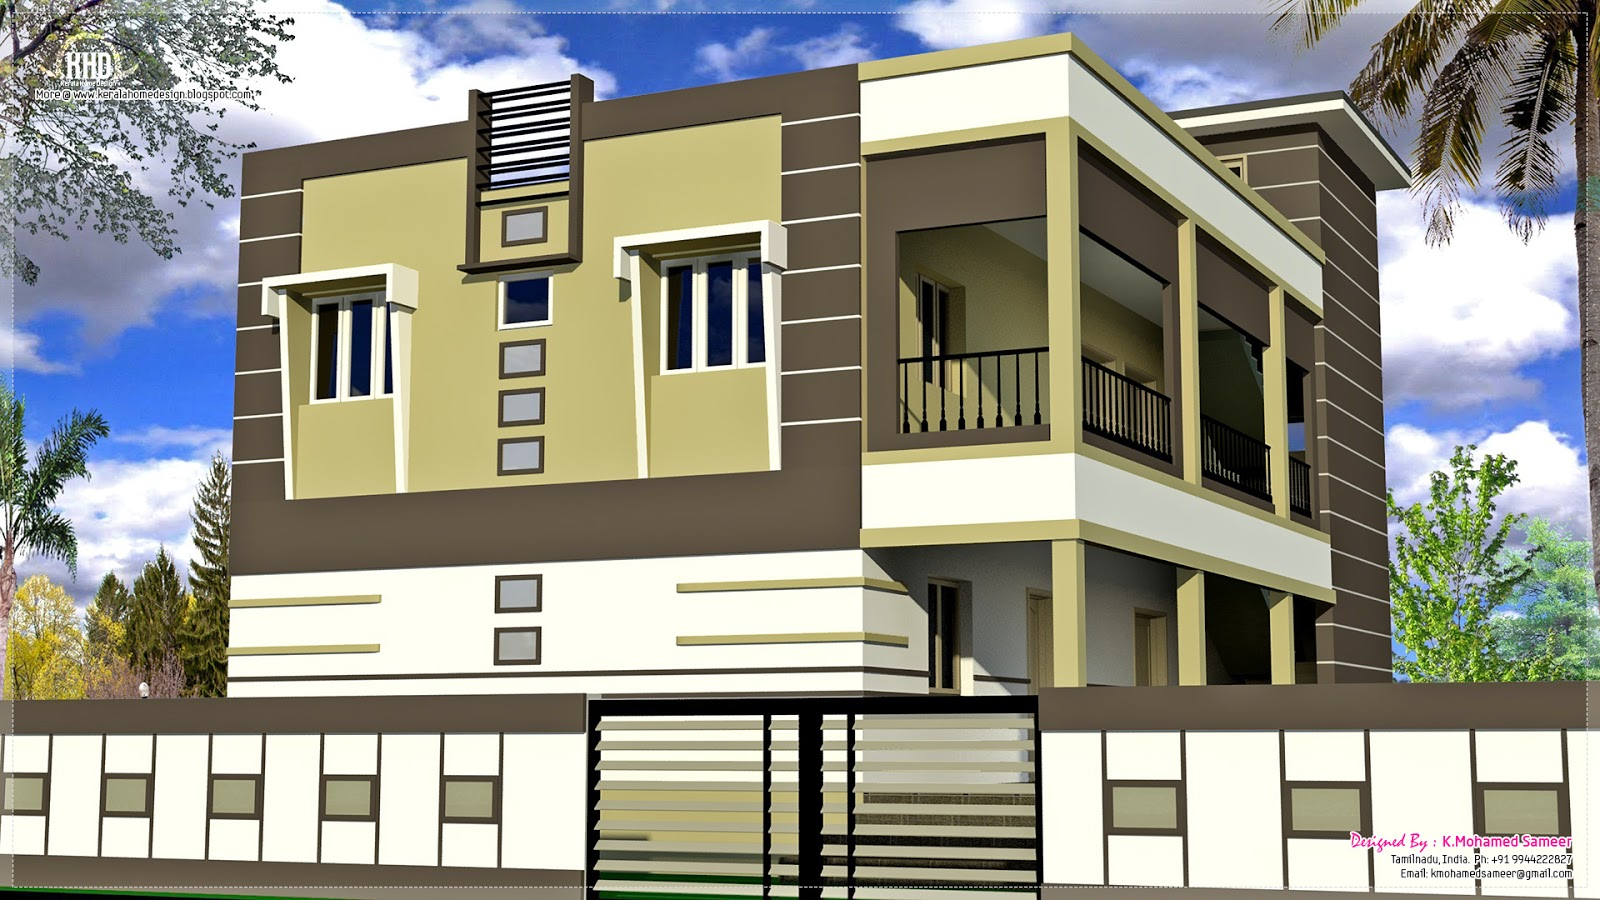 2 south indian house exterior designs home kerala plans for House outside design ideas